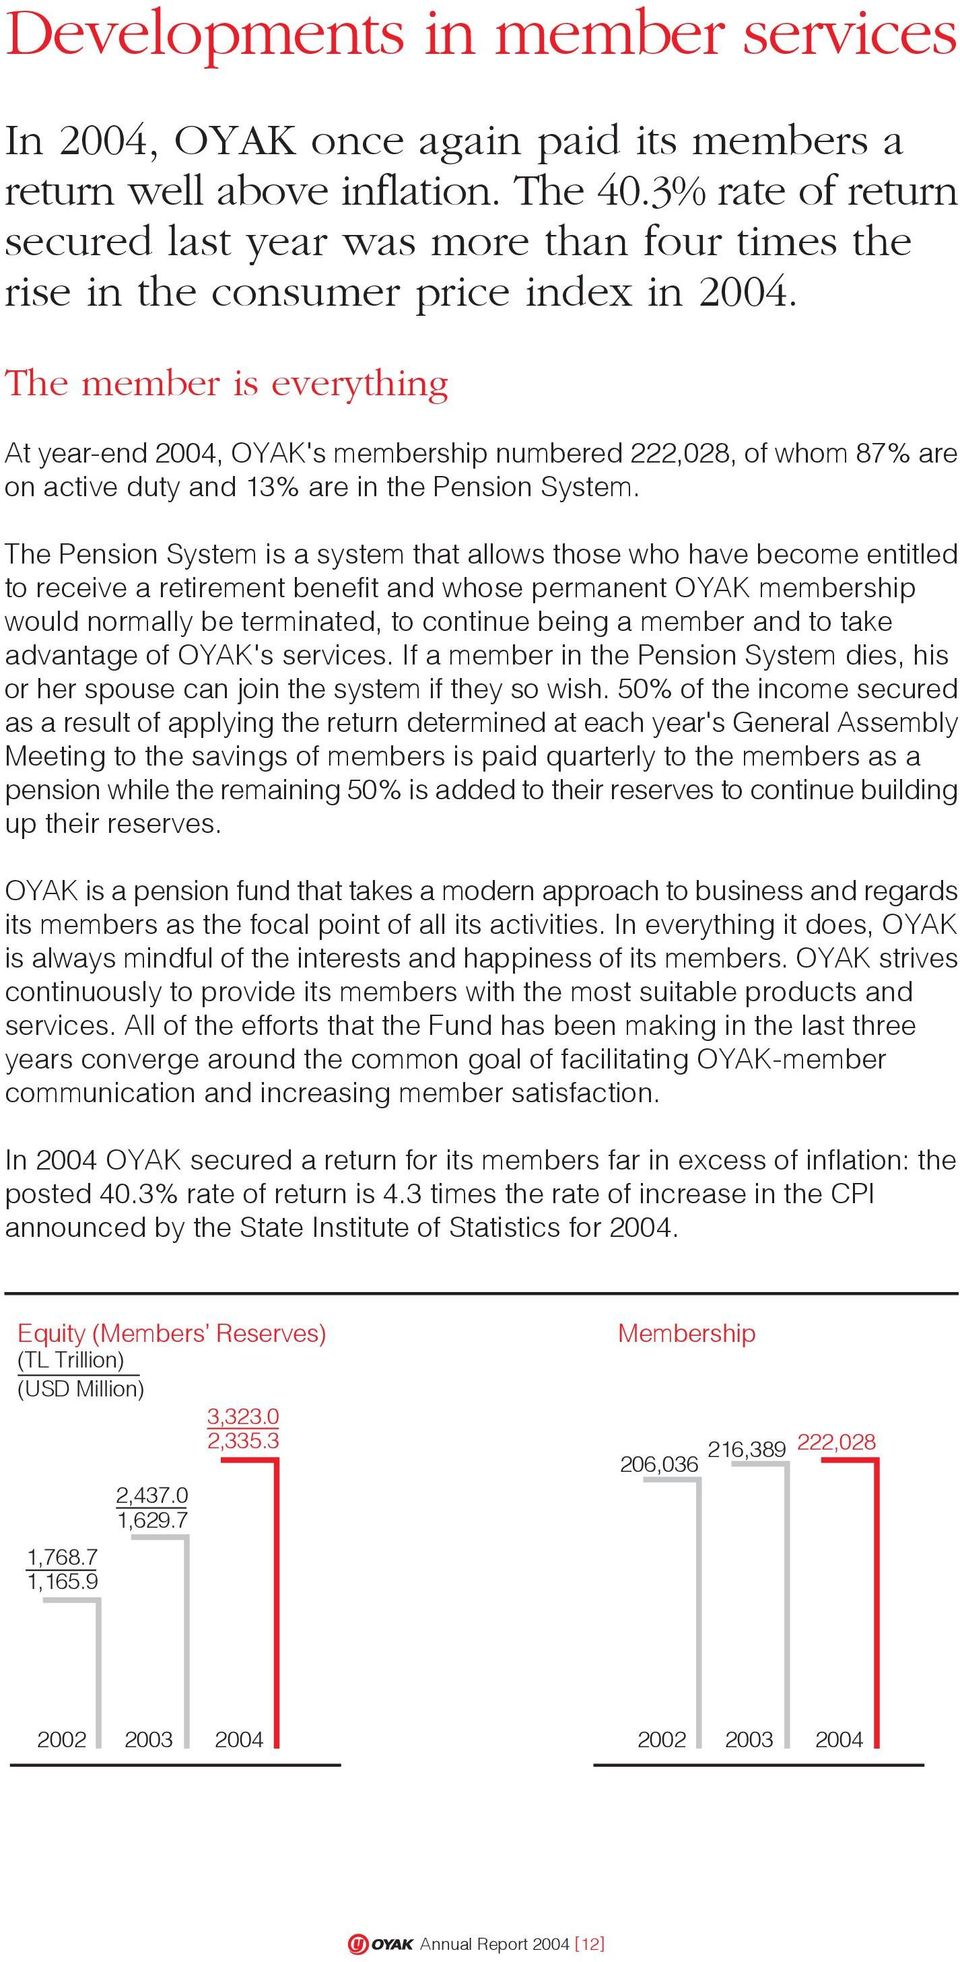 The member is everything At year-end 2004, OYAK's membership numbered 222,028, of whom 87% are on active duty and 13% are in the Pension System.